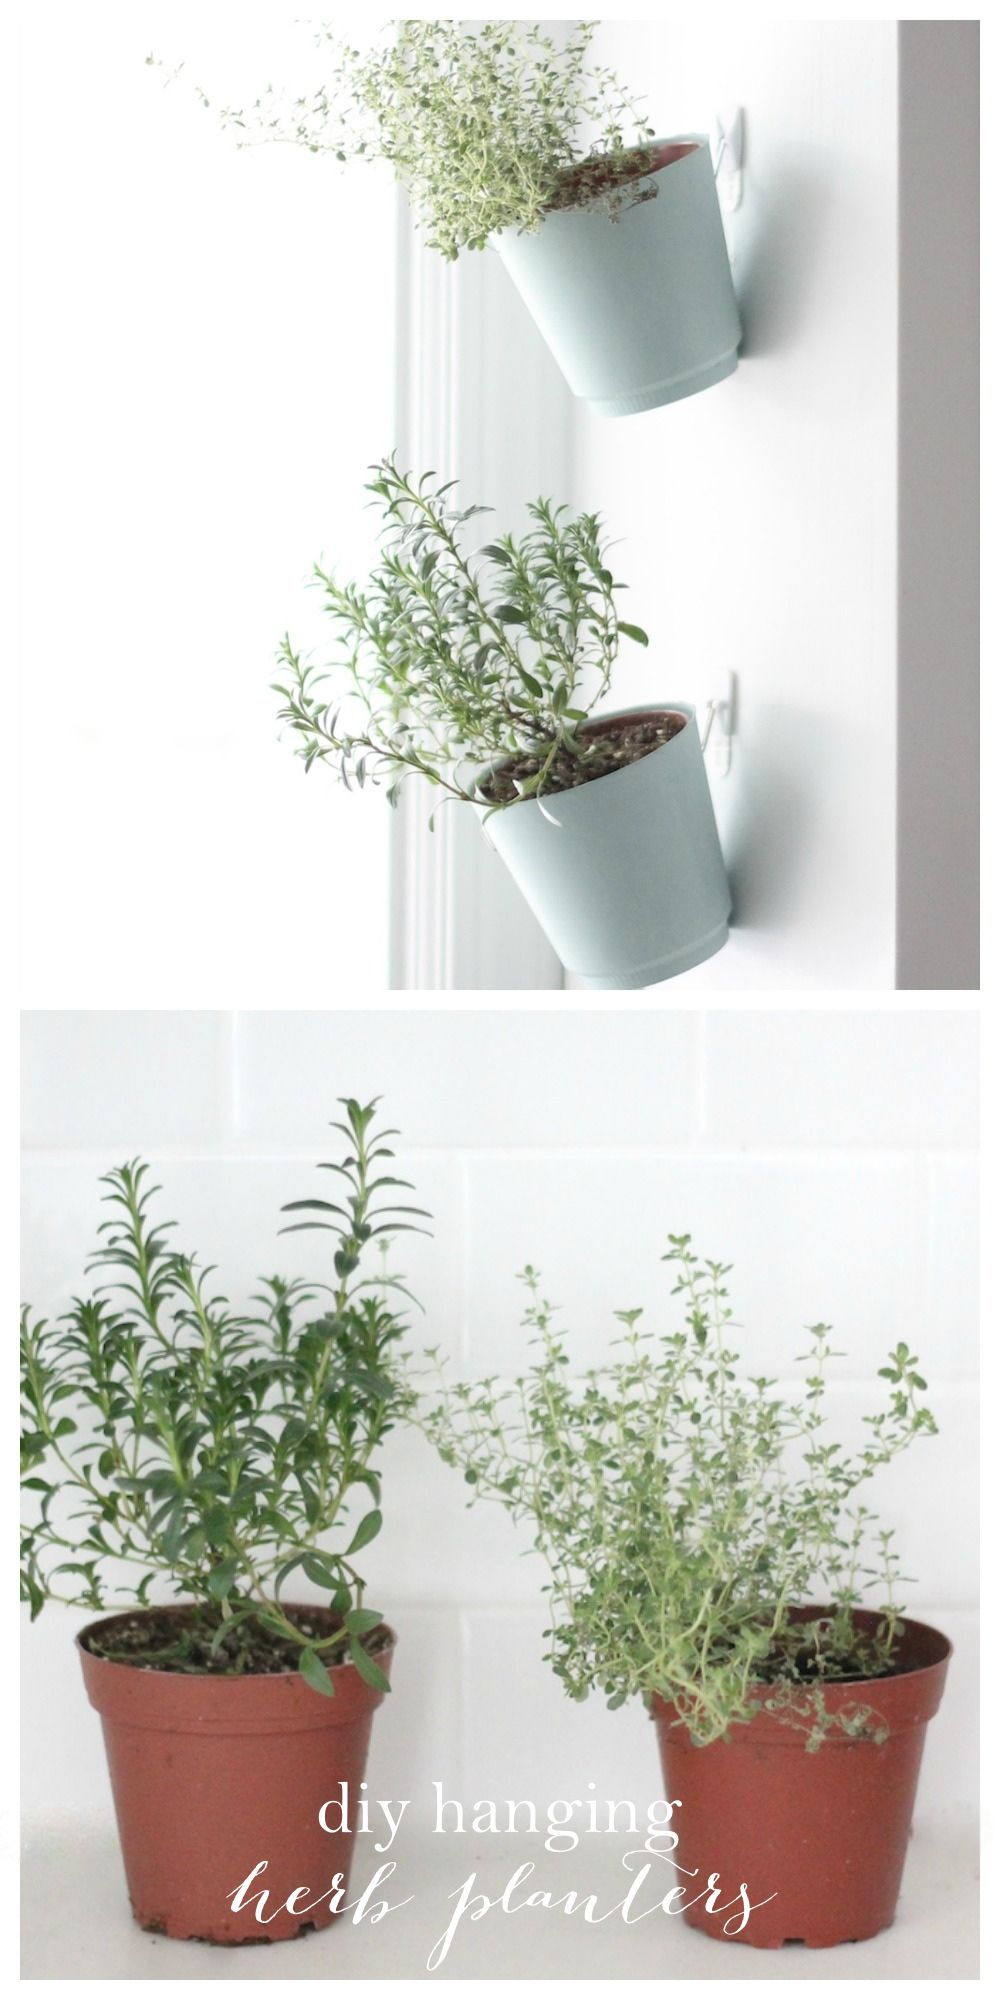 diy hanging planters bring your herbs indoors with this easy tutorial - Hanging Herb Garden